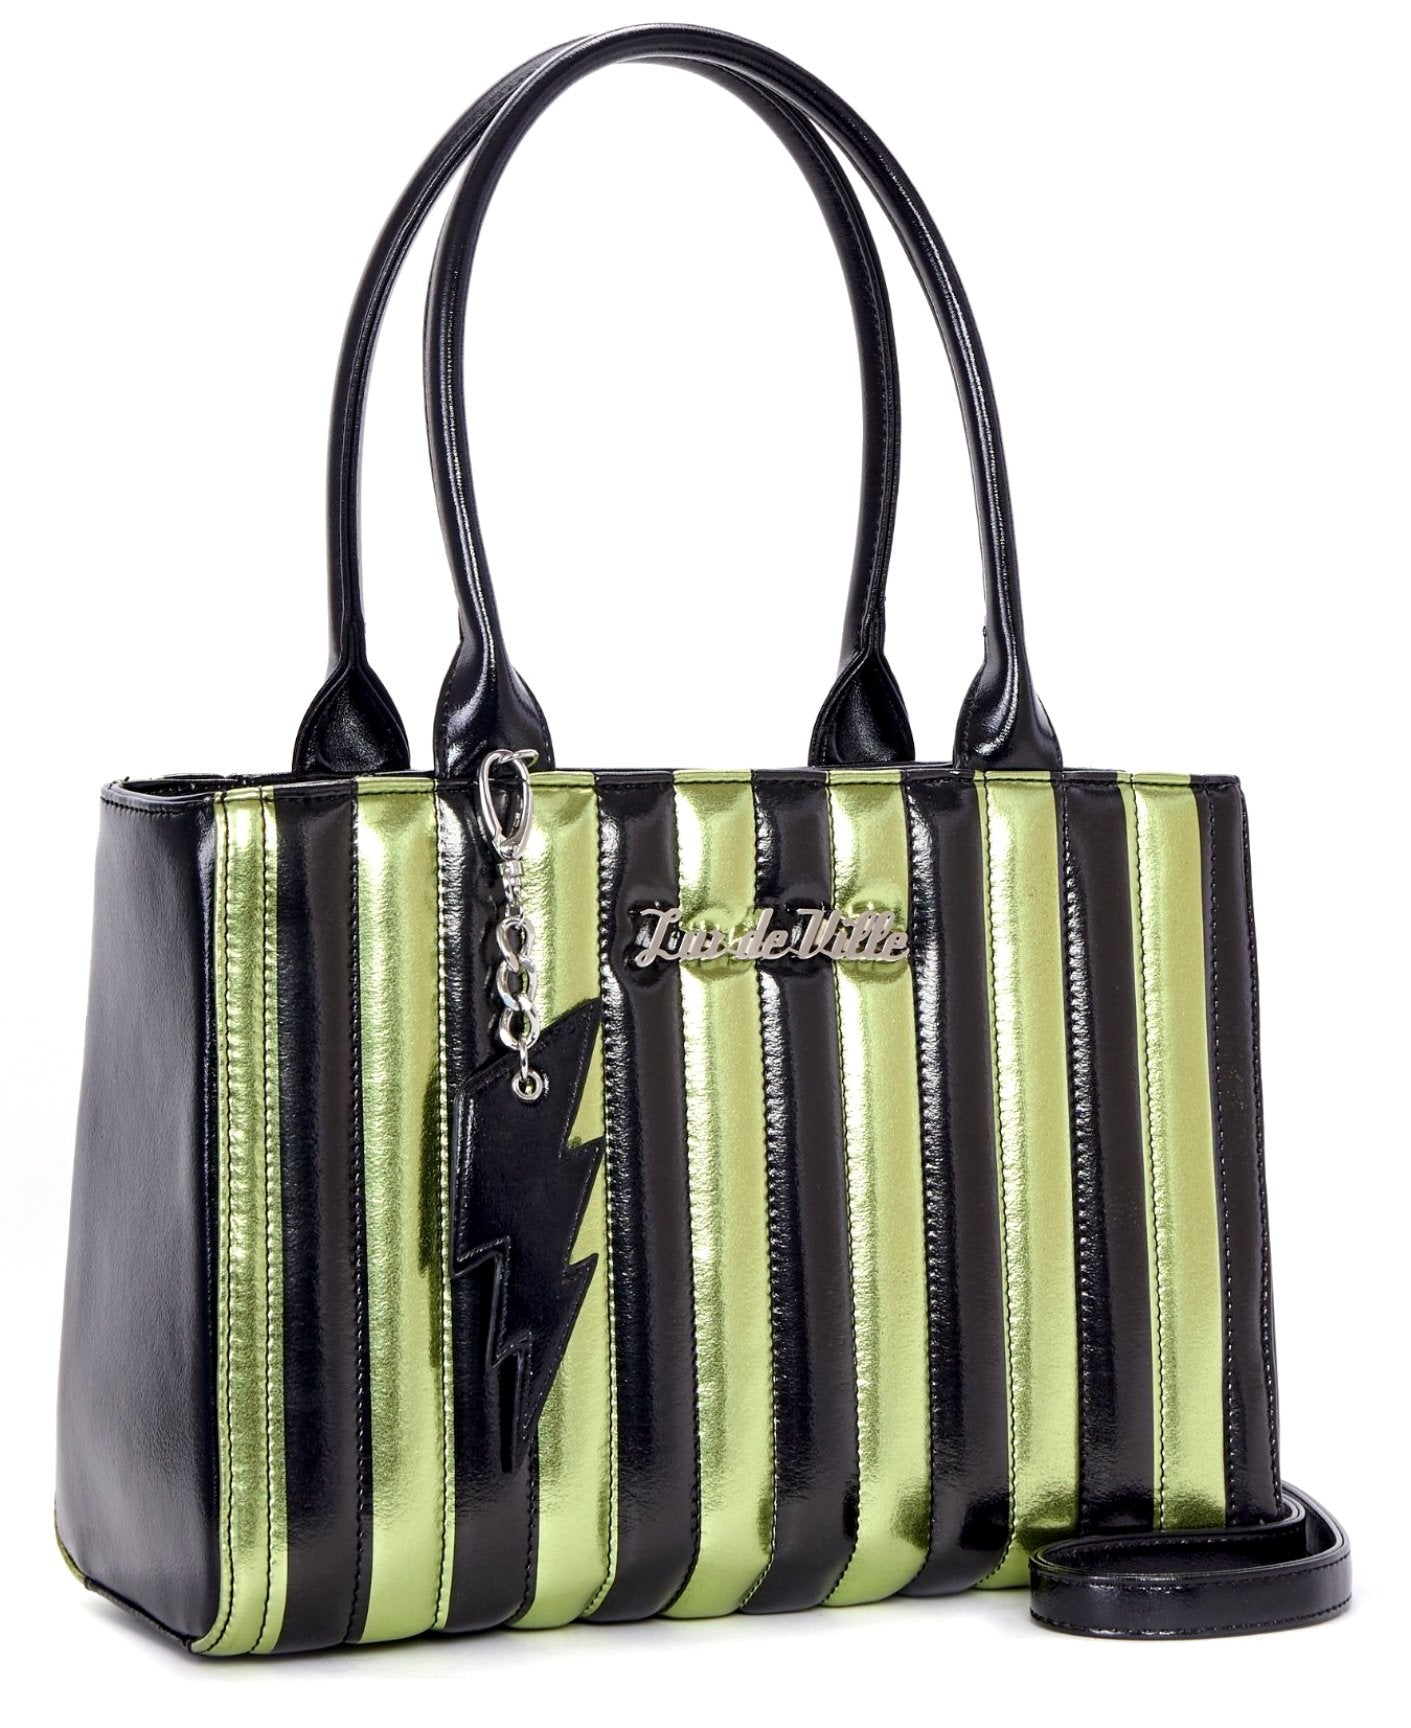 The BAD REPUTATION Tote - GREEN & BLACK METALLIC